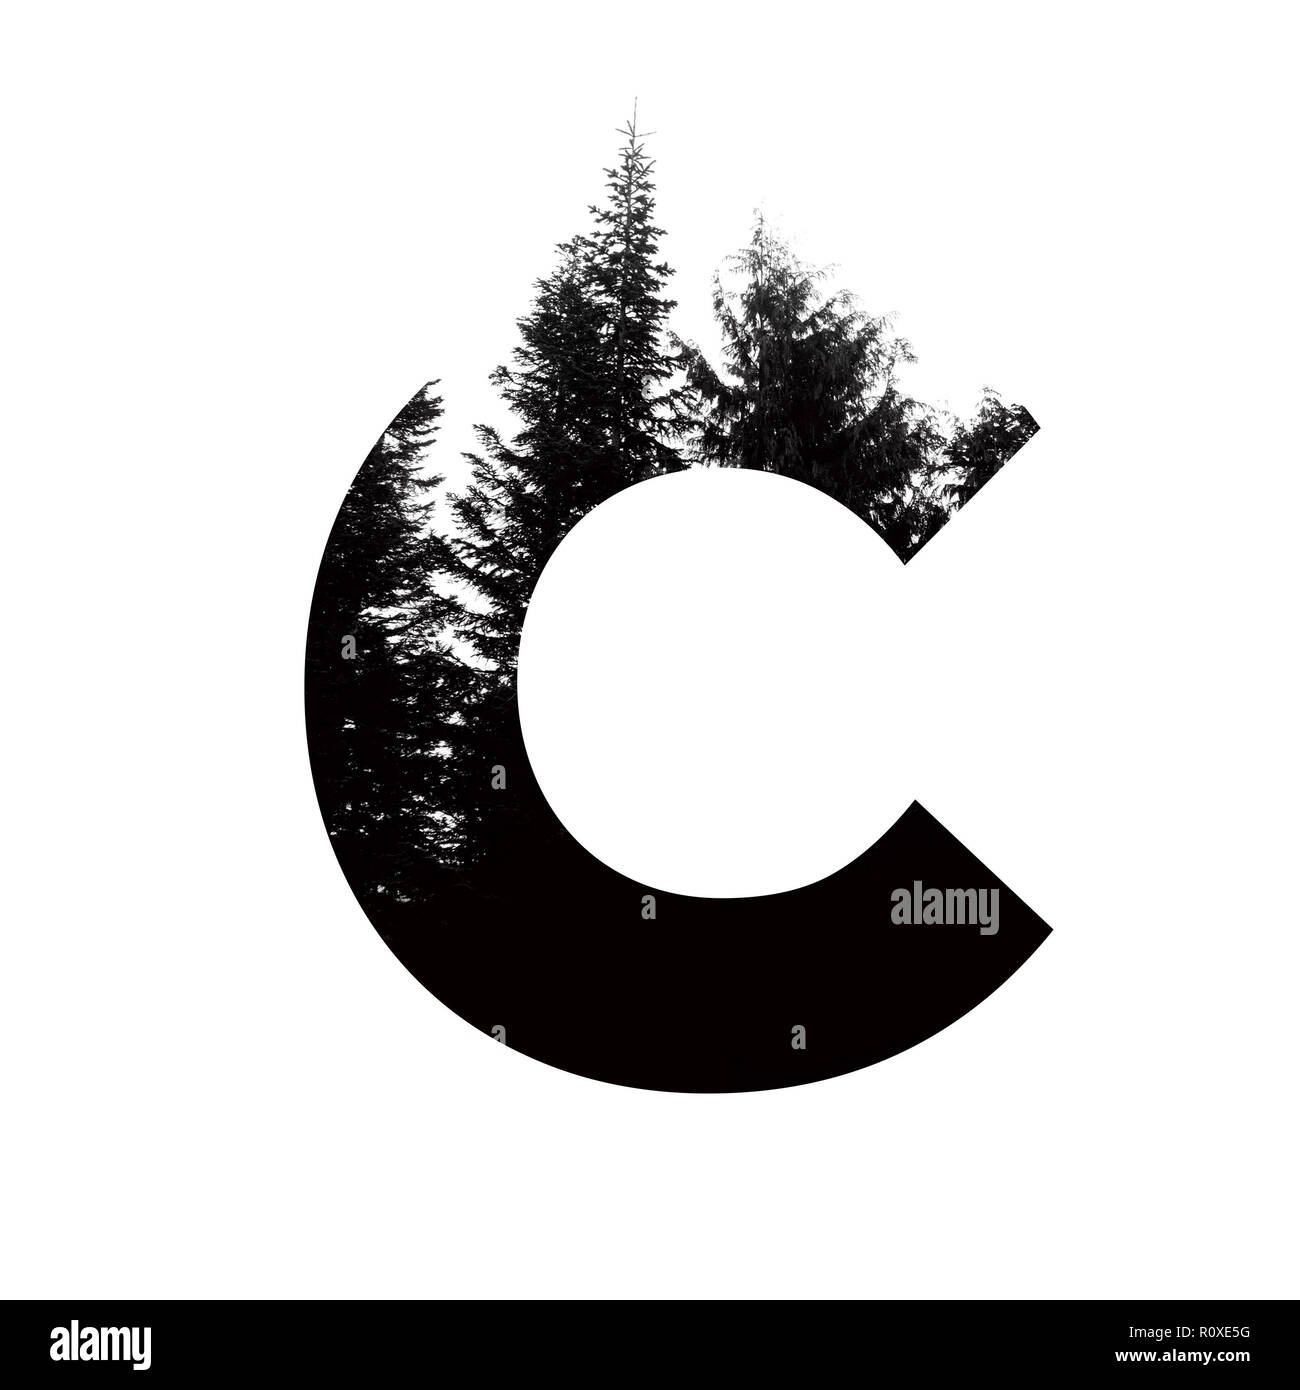 C Lettering High Resolution Stock Photography and Images - Alamy